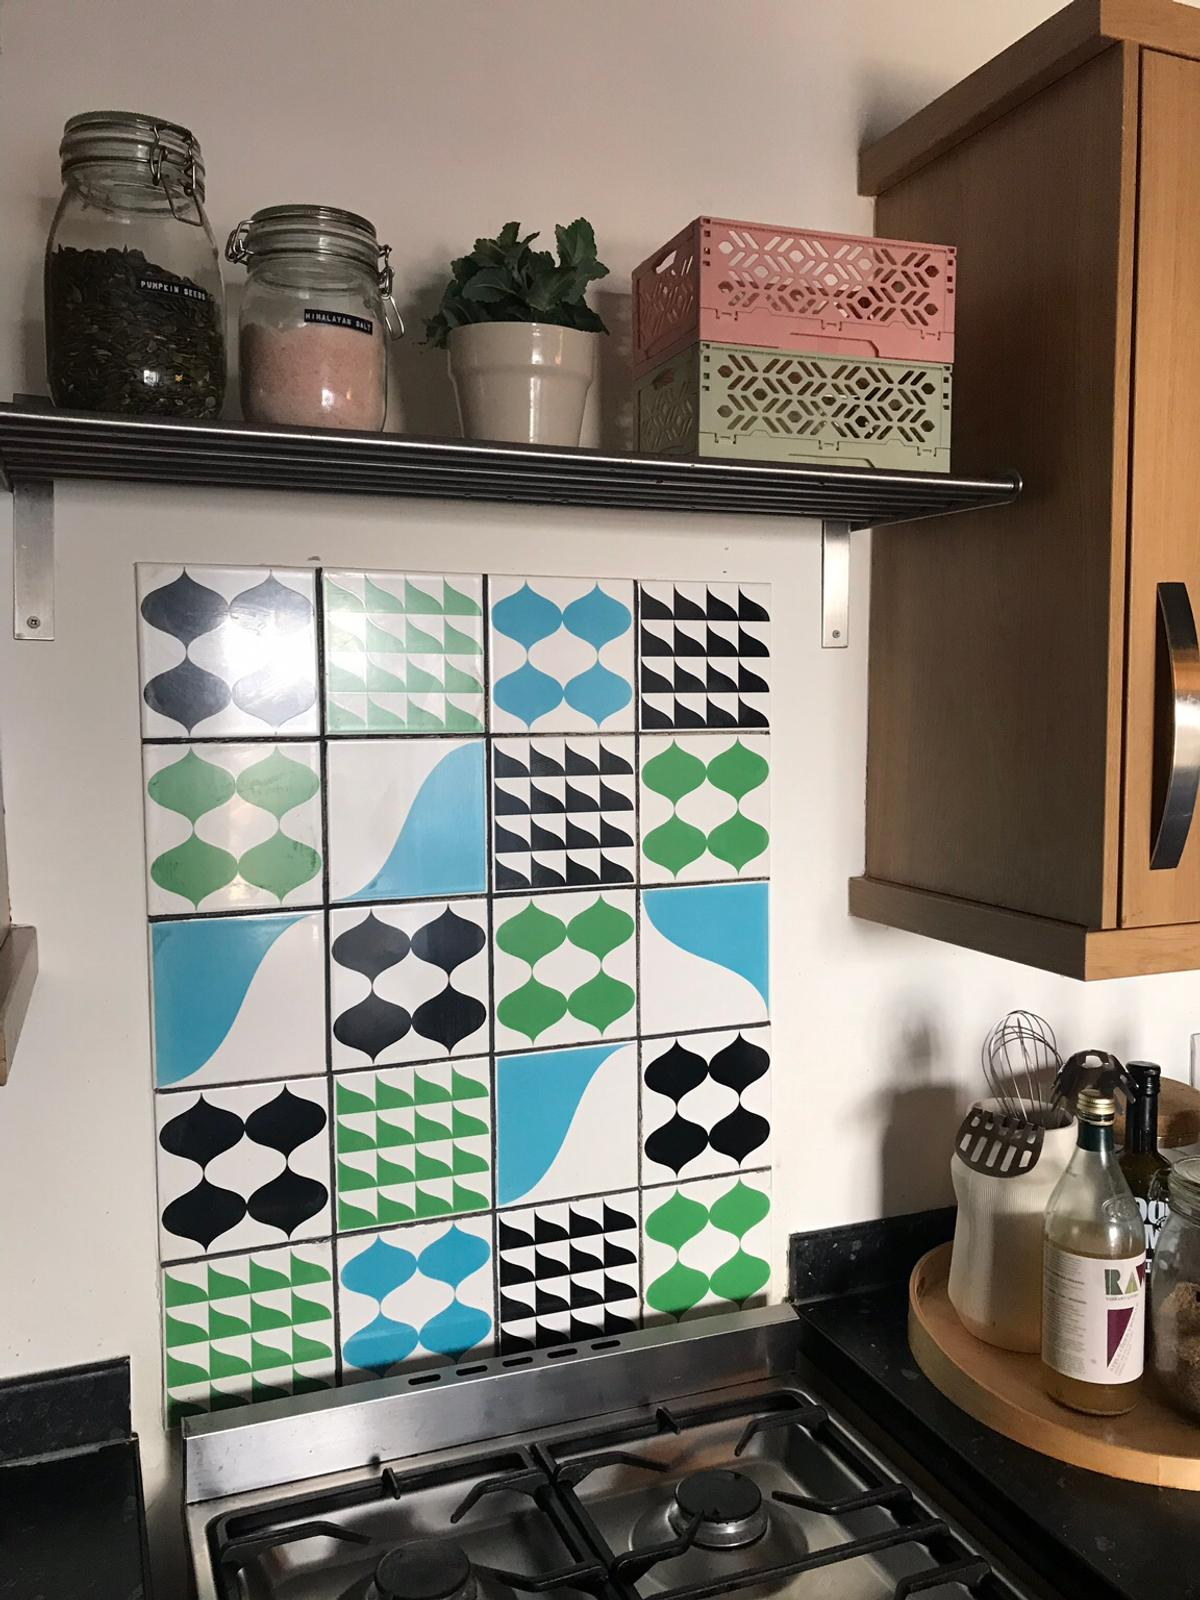 - Ikea Tillfalle Wall Tiles (approx 1sqm) In L8 Liverpool Für 5,00